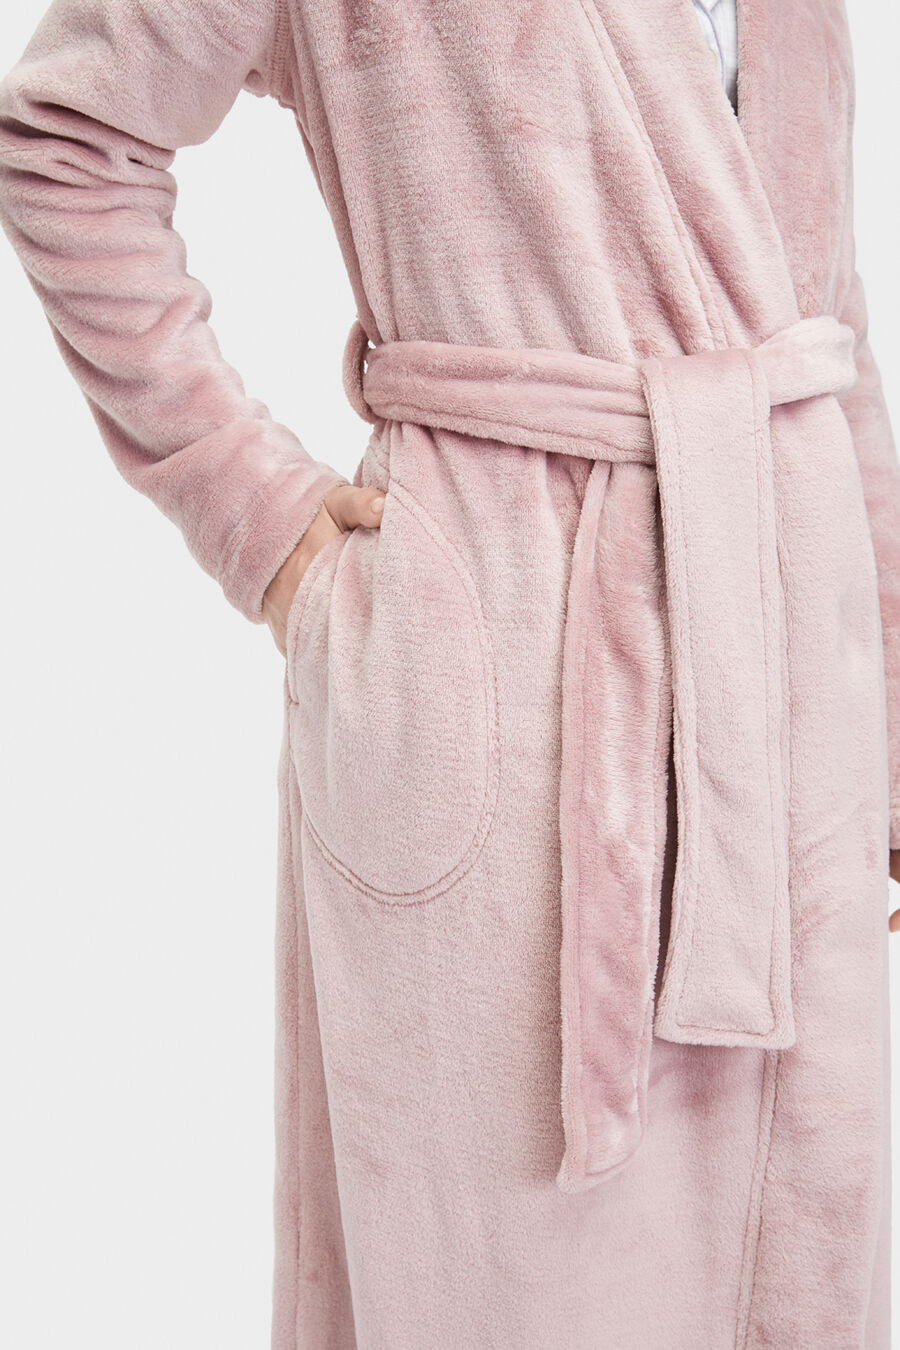 Marlow Robe - Image 4 of 5